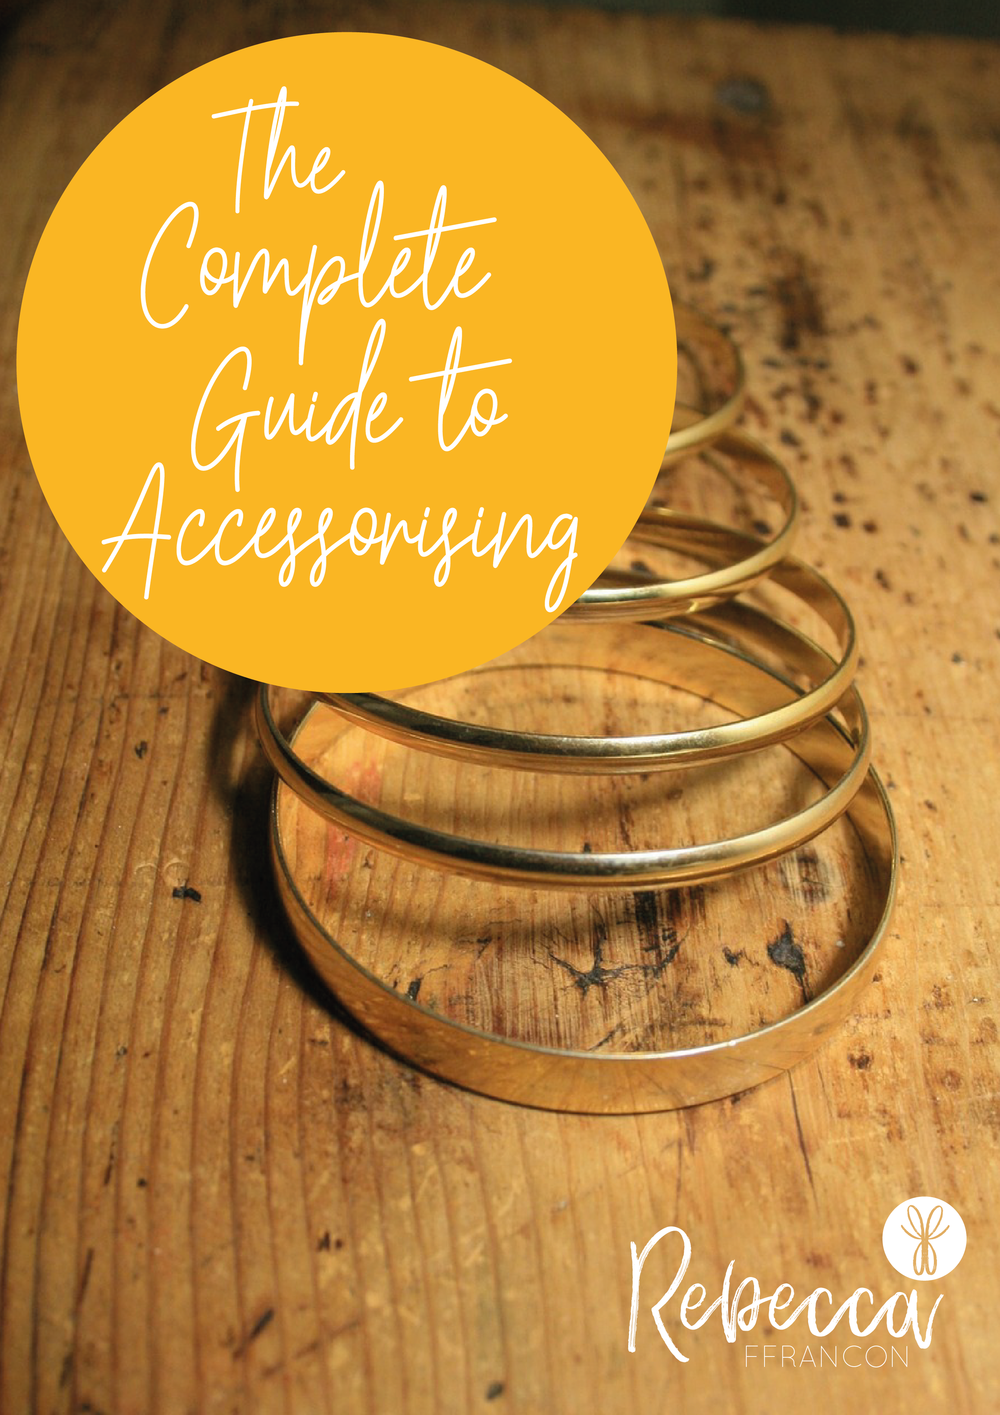 ACCESSORIES - Download my FREE Guide to accessorising here